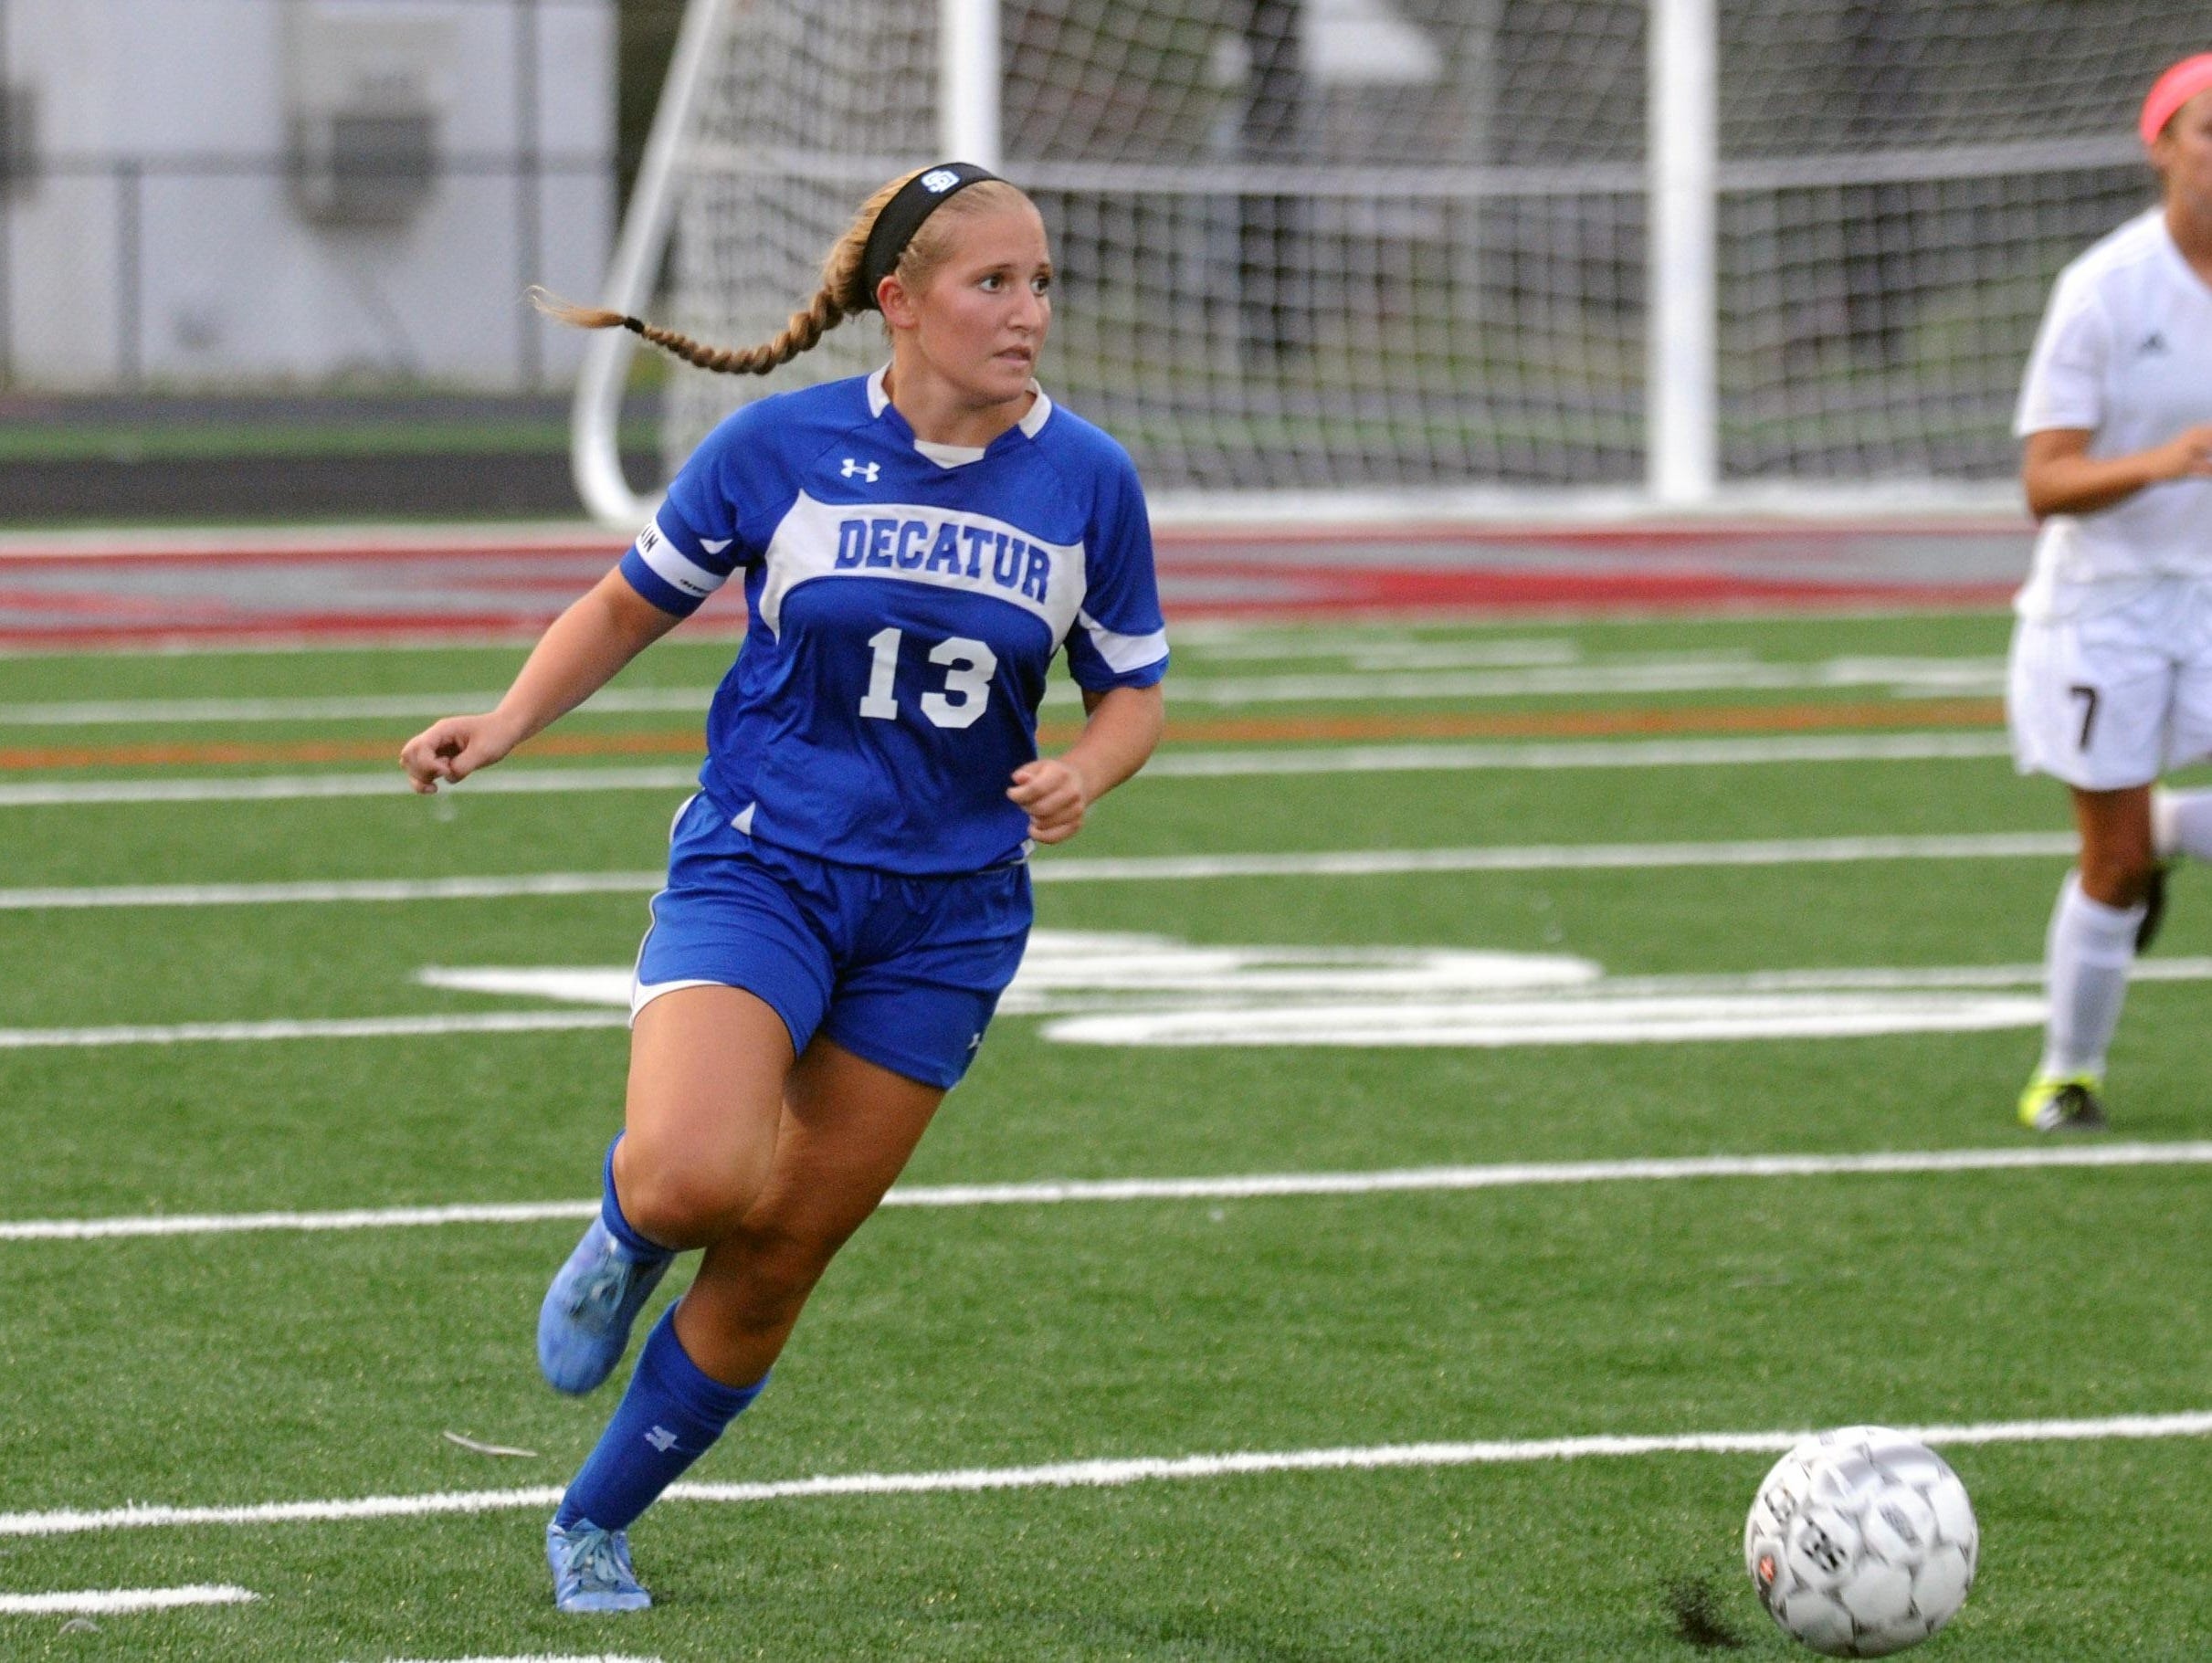 Stephen Decatur senior captain Alexis McDonough works the ball up the field against Snow Hill on Monday. Wherever and whenever is were McDonough plays for the Seahawks.